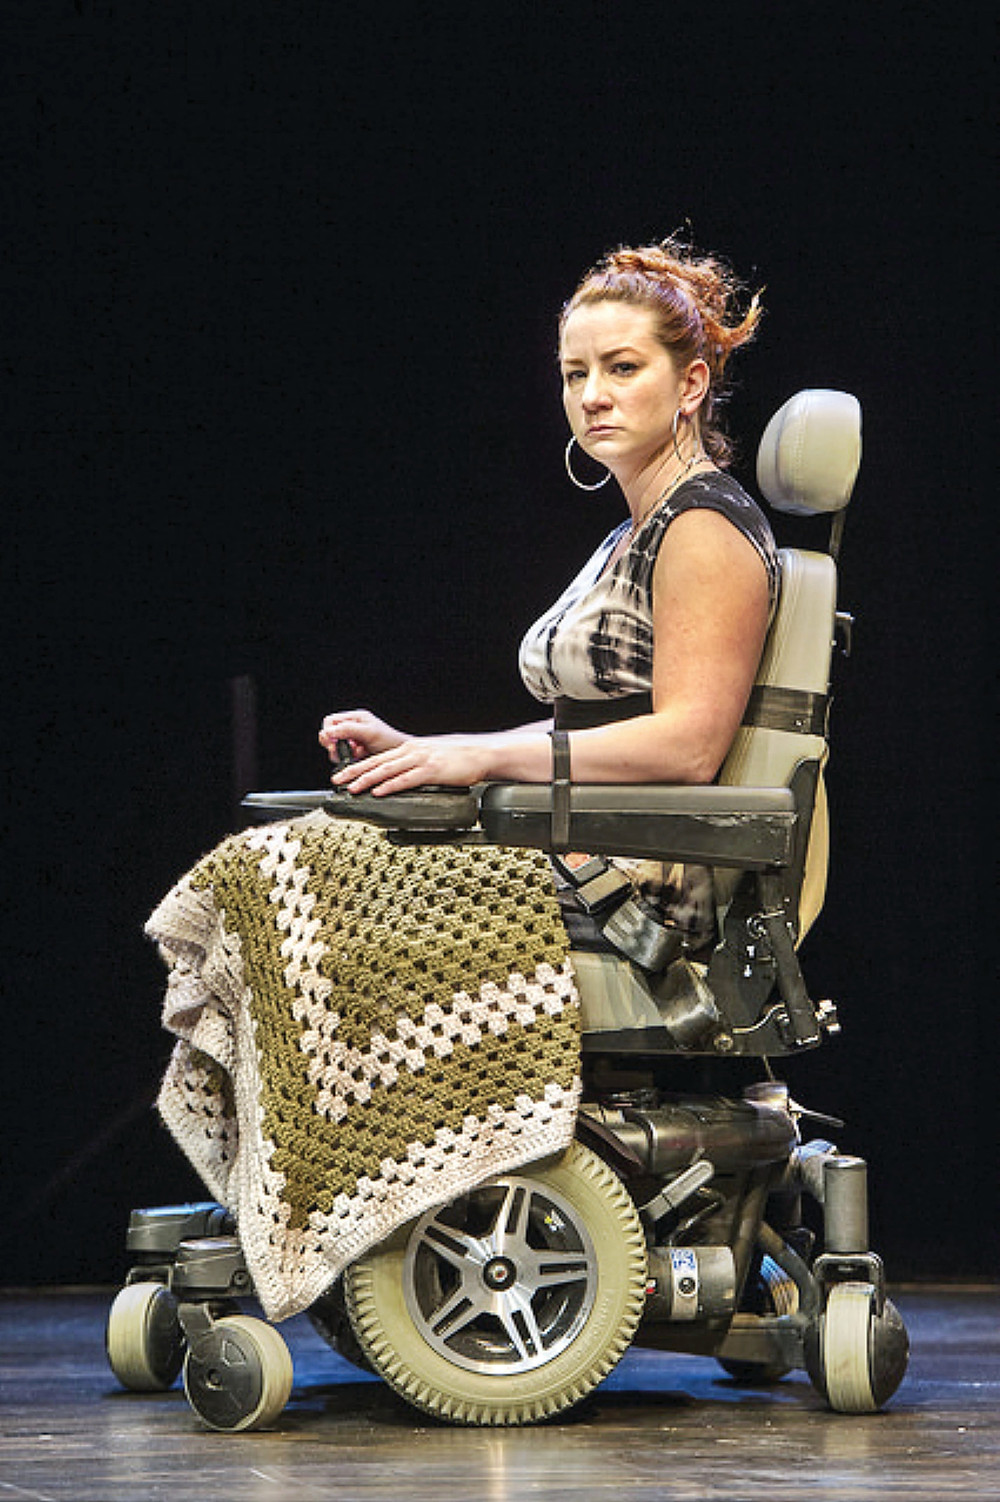 Sullivan as Ani in COST OF LIVING at The Williamstown Theatre Festival